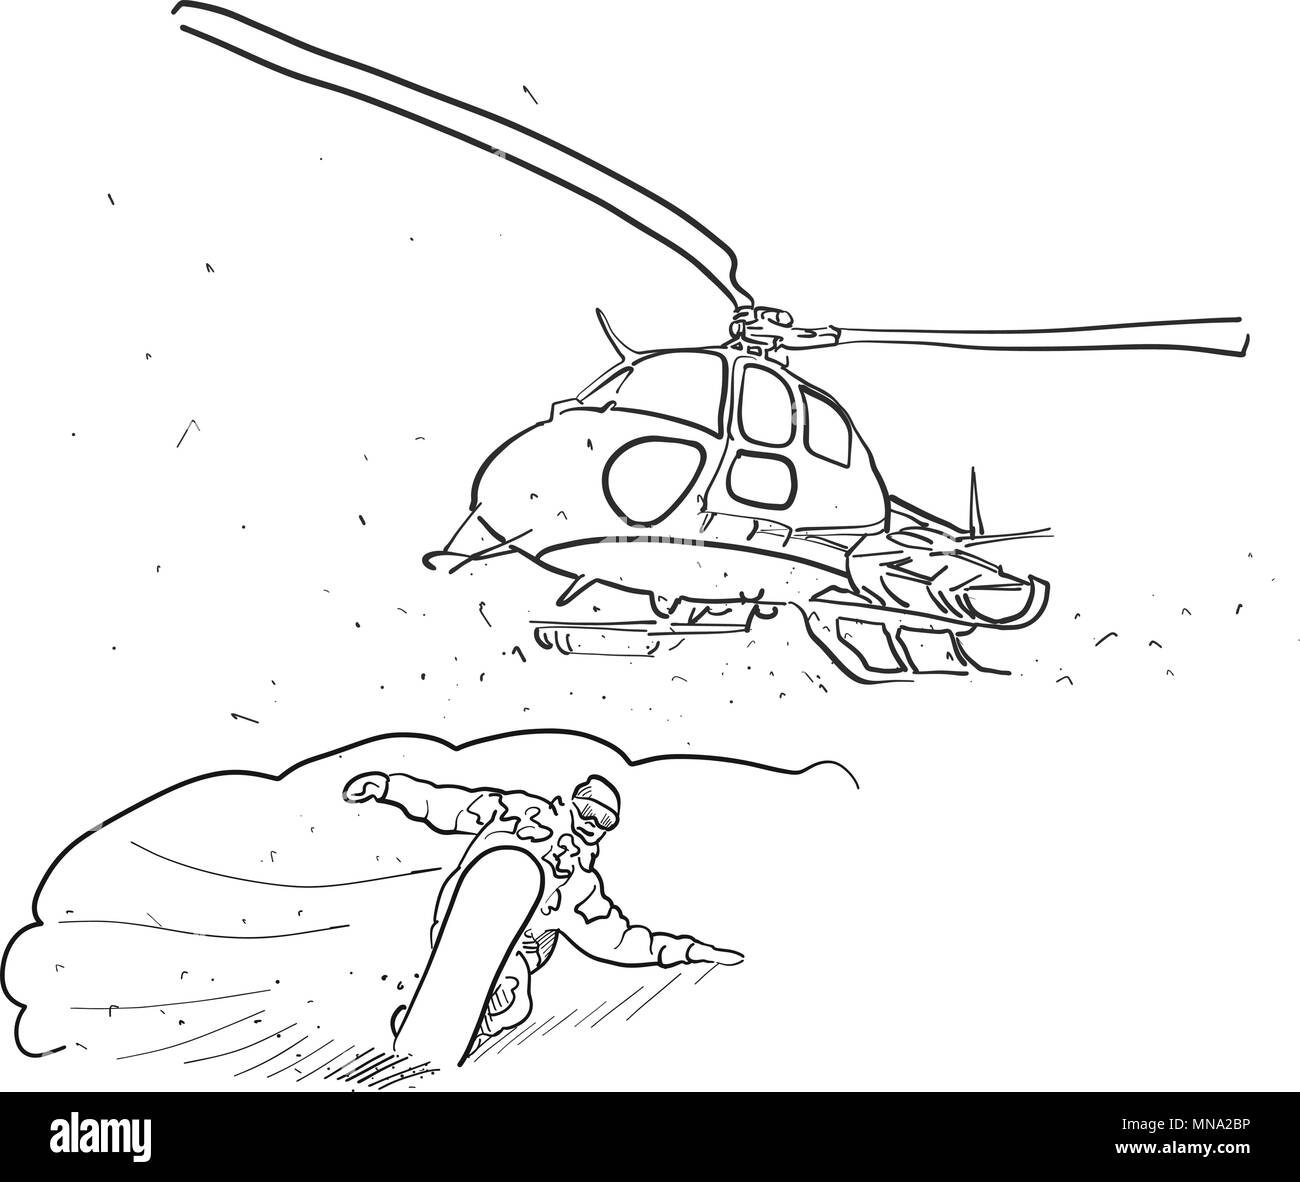 Snowboarding And Helicopter Doodle Sketches Hand Drawn Vector